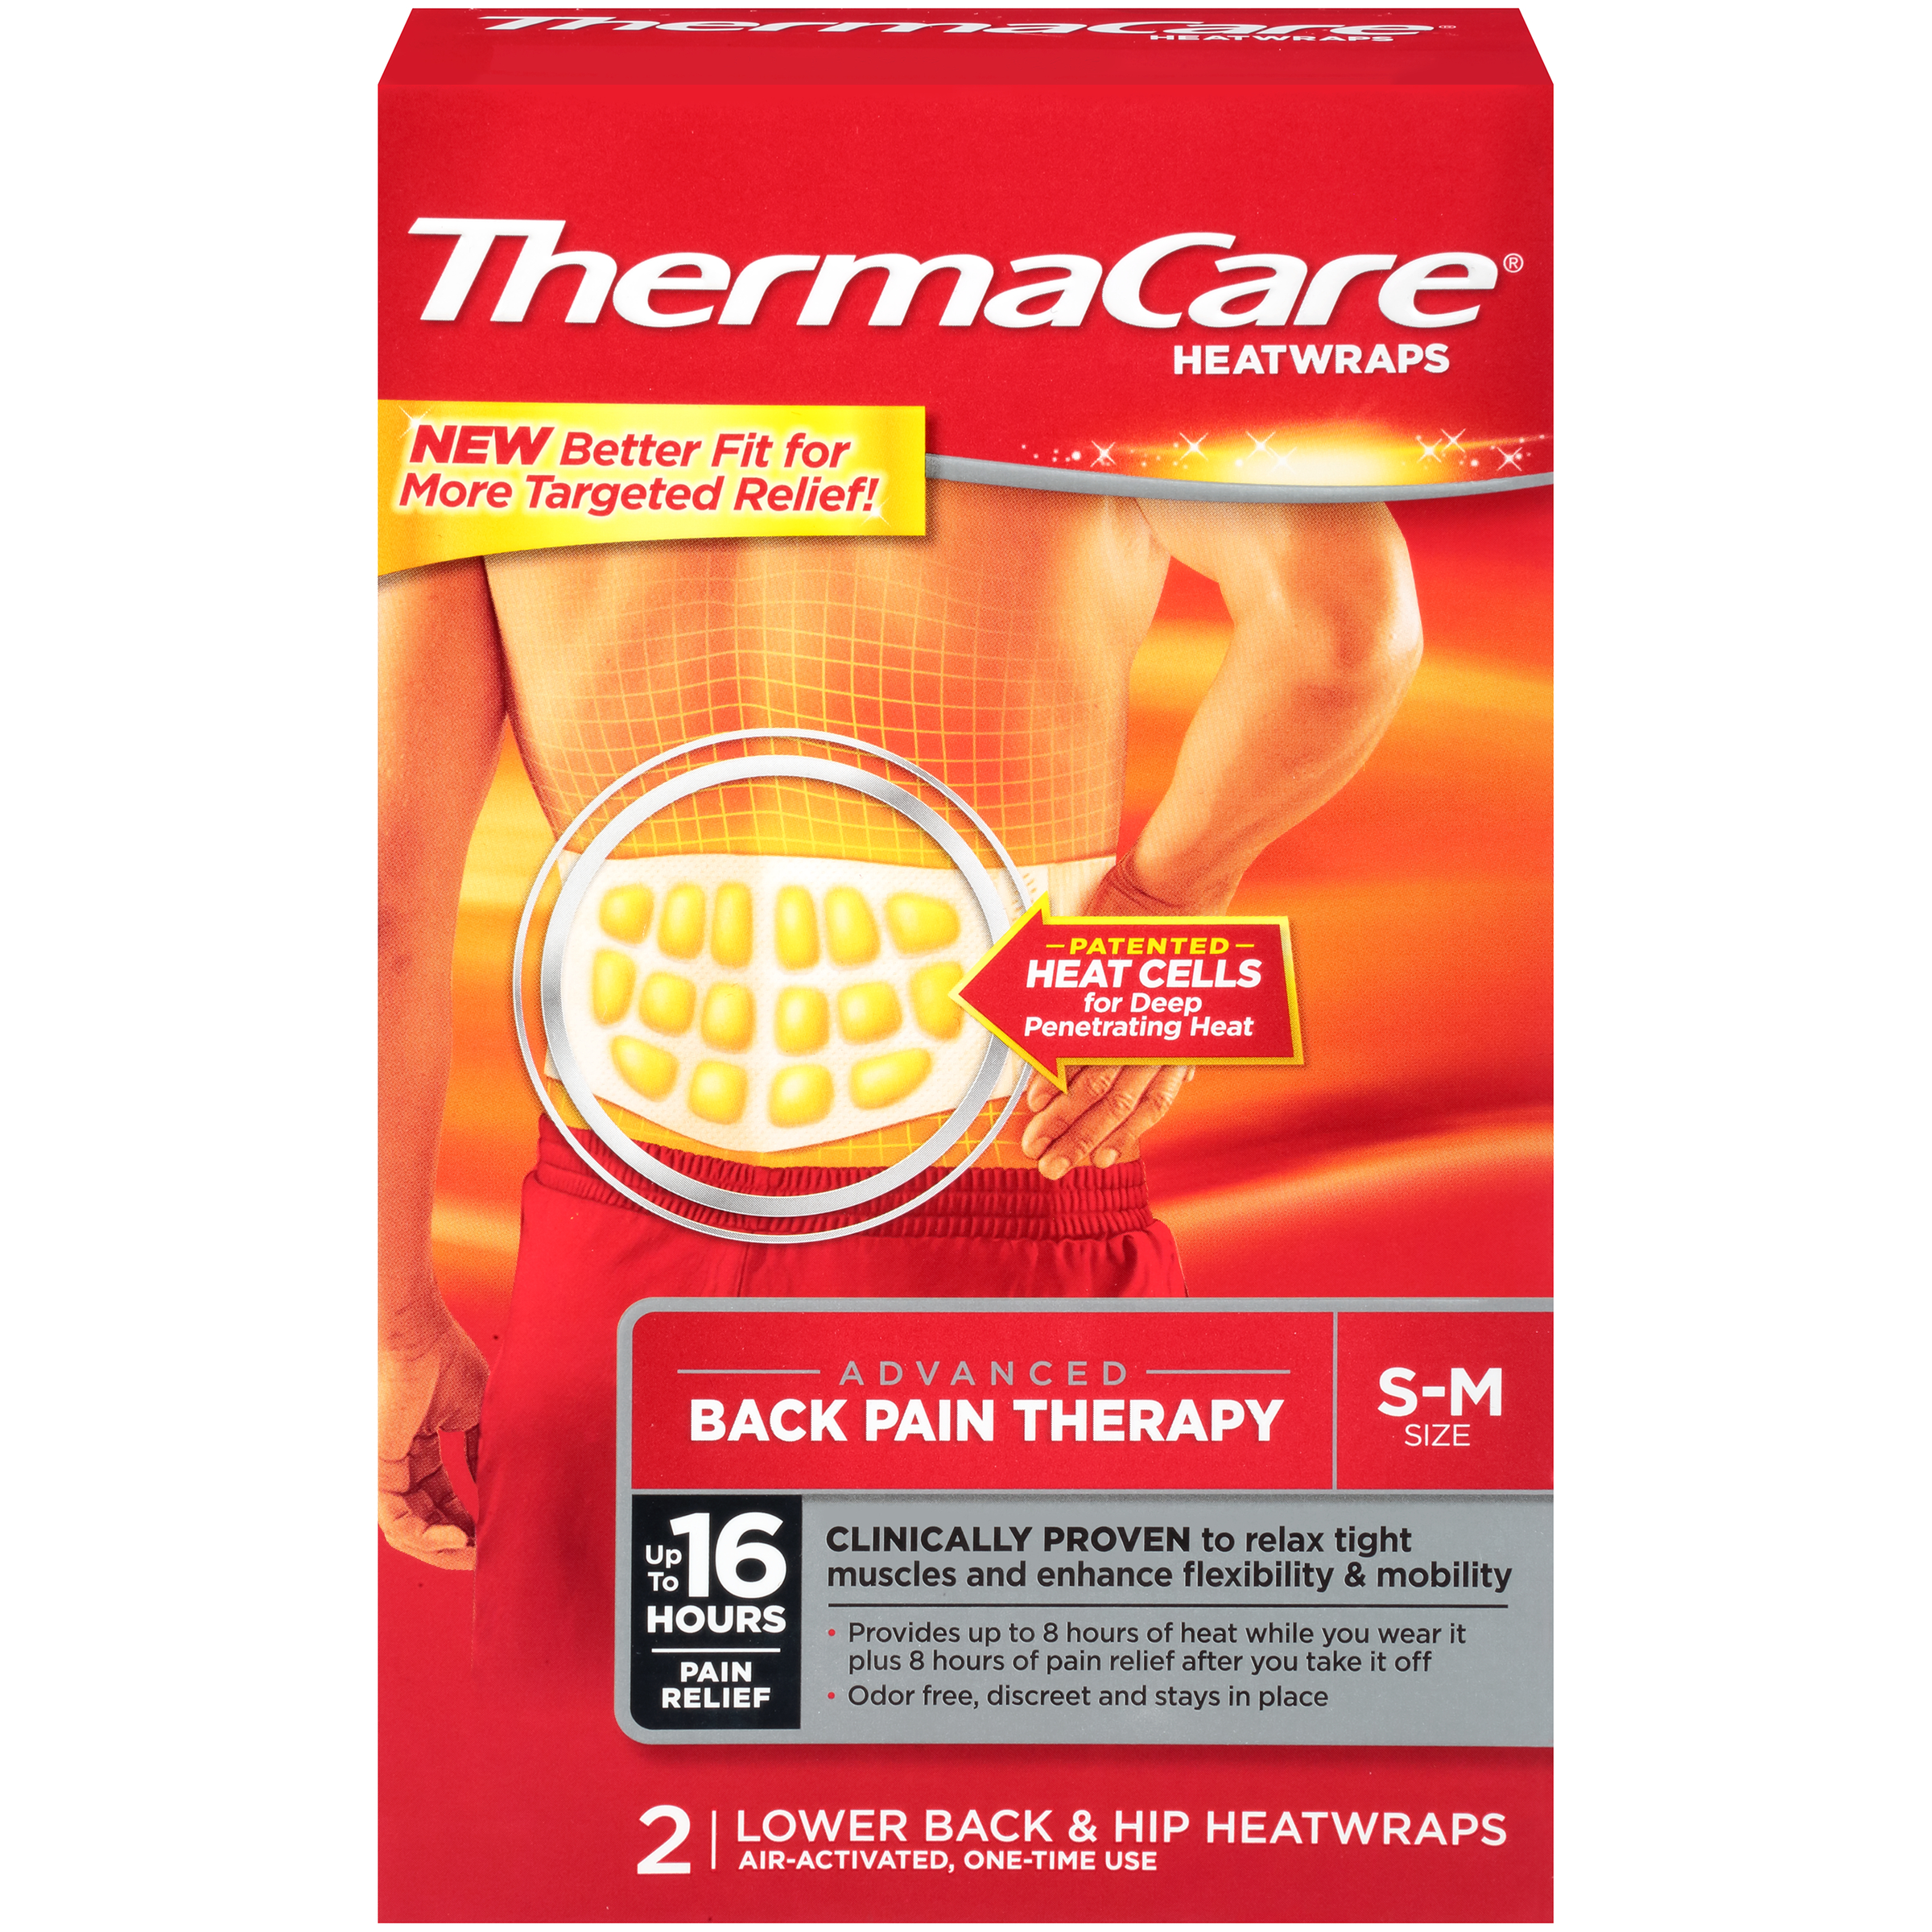 ThermaCare Advanced Back Pain Therapy (2 Count, S-M Size) Heatwraps, Up to 16 Hours Pain Relief, Lower Back, Hip Use, Temporary Relief of Muscular, Joint Pains